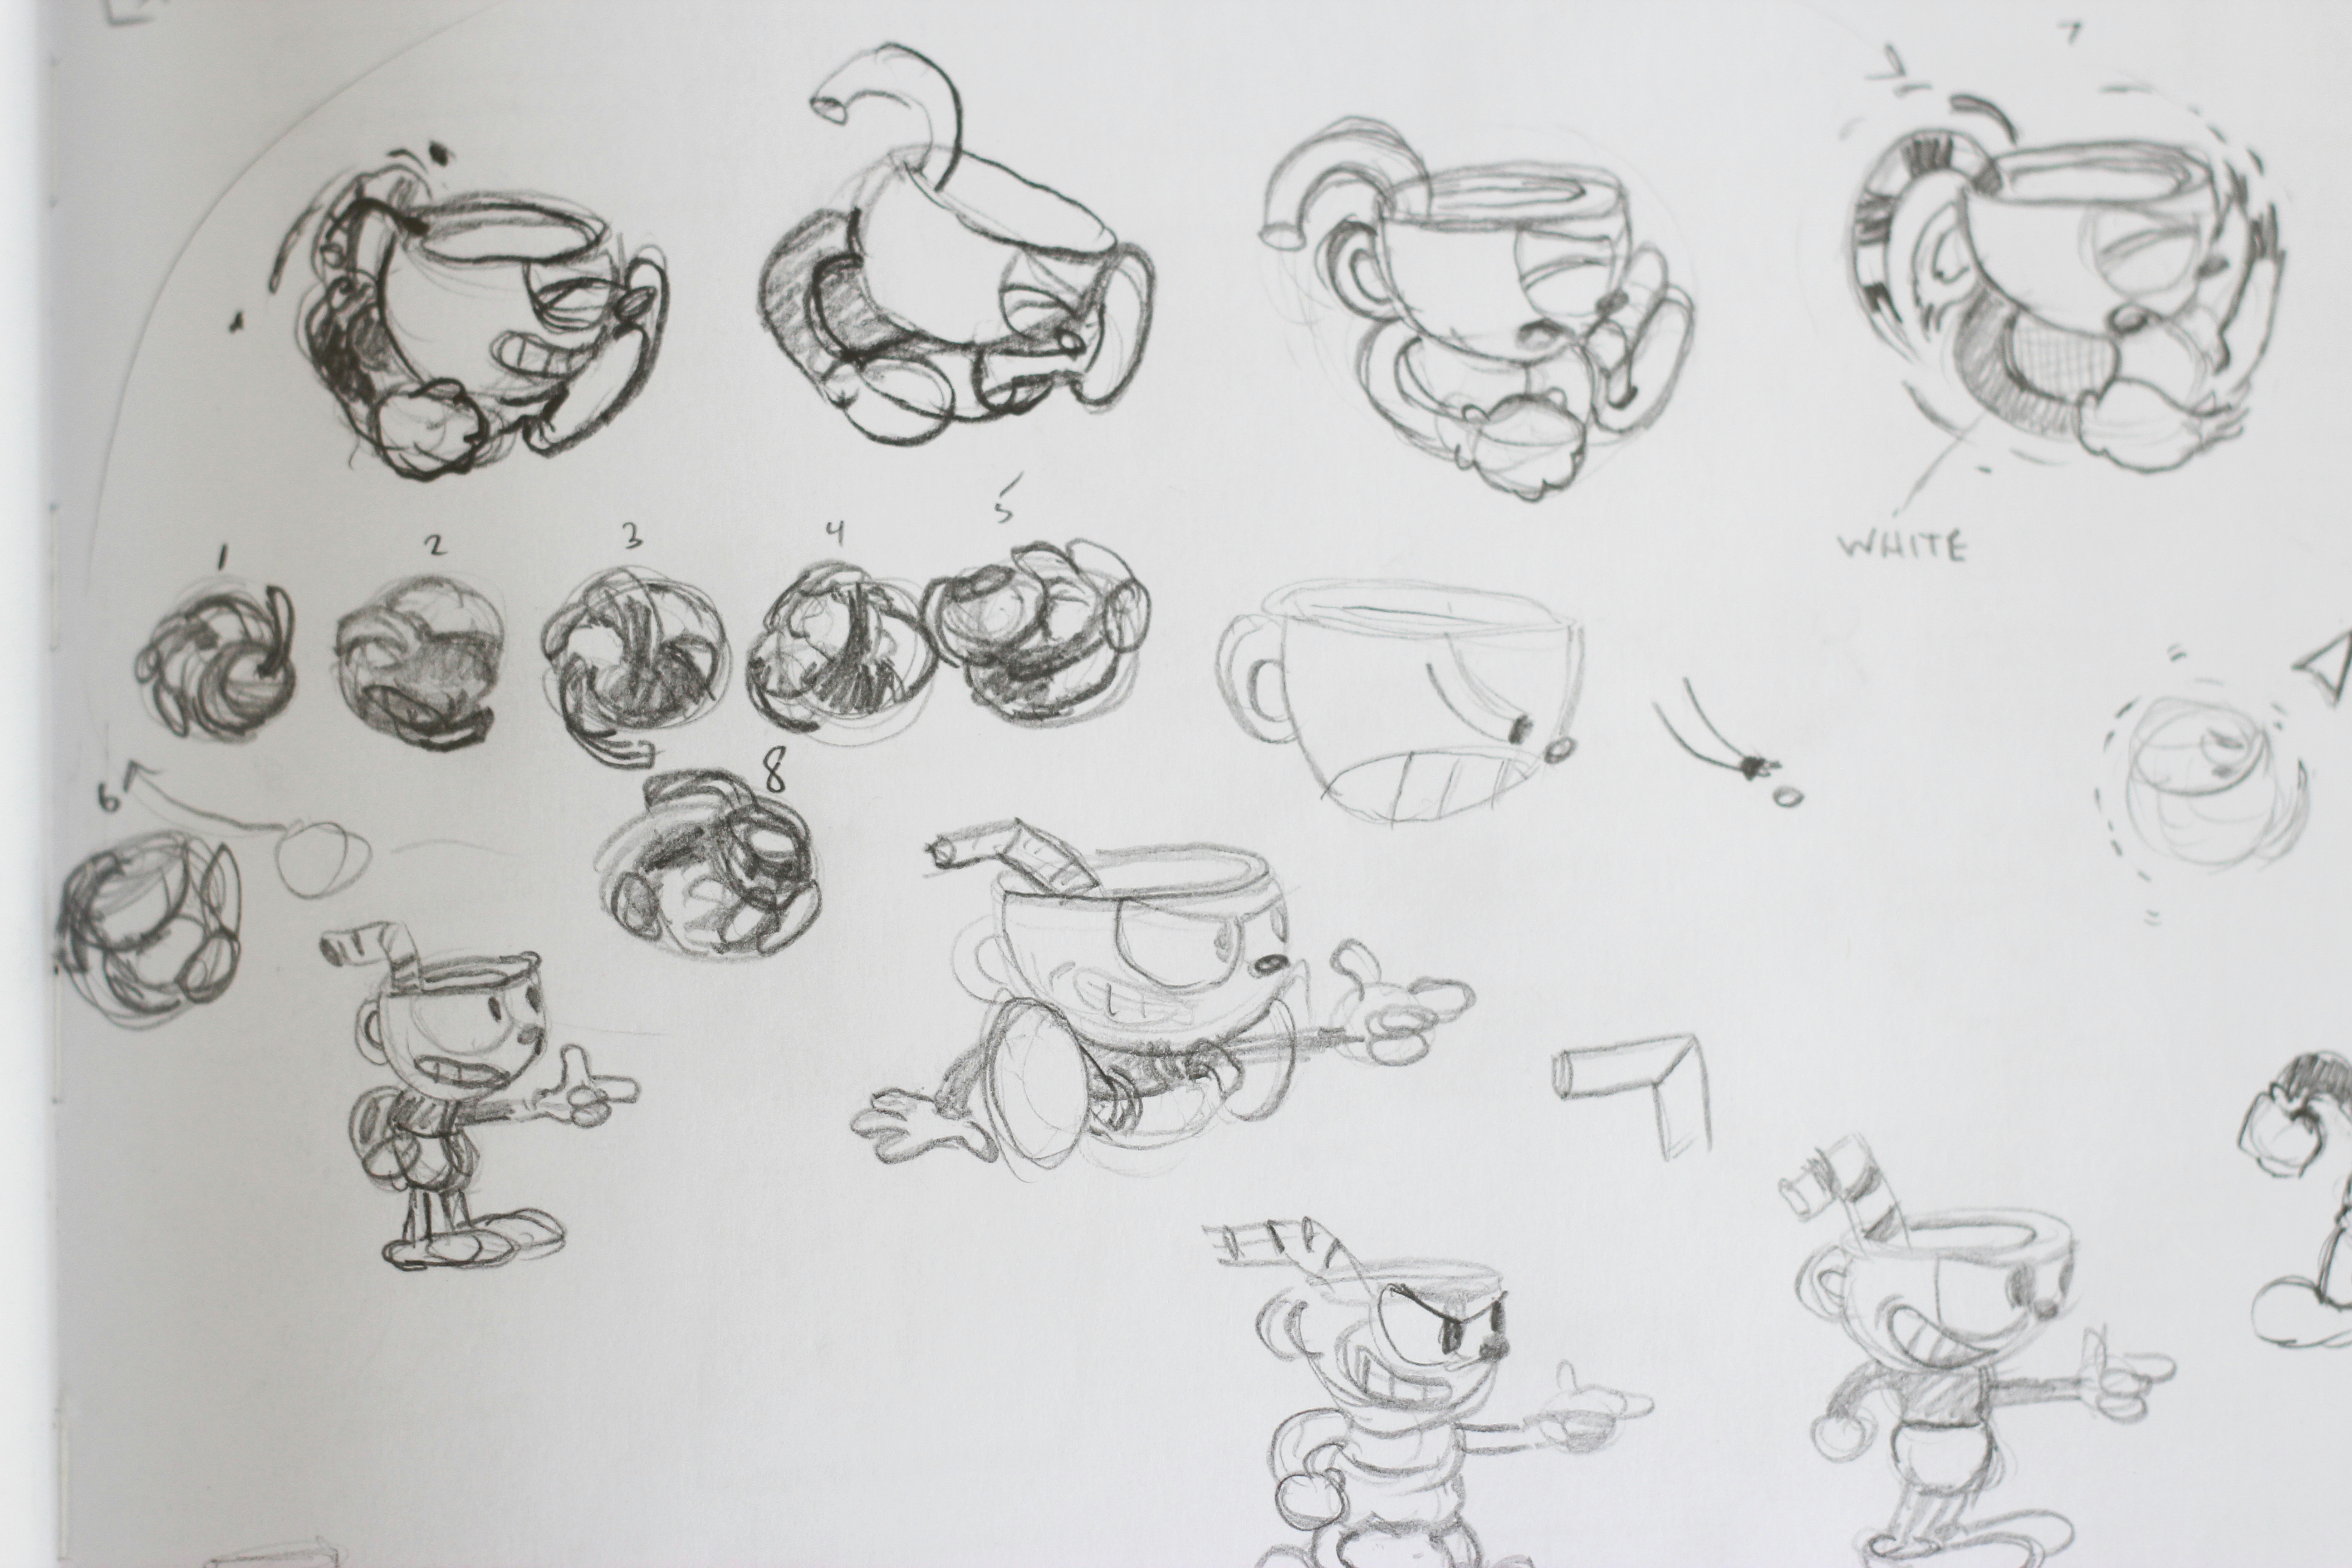 Drawing 1930s Cartoon Cuphead Creating A Game that Looks Like A 1930s Cartoon the Verge